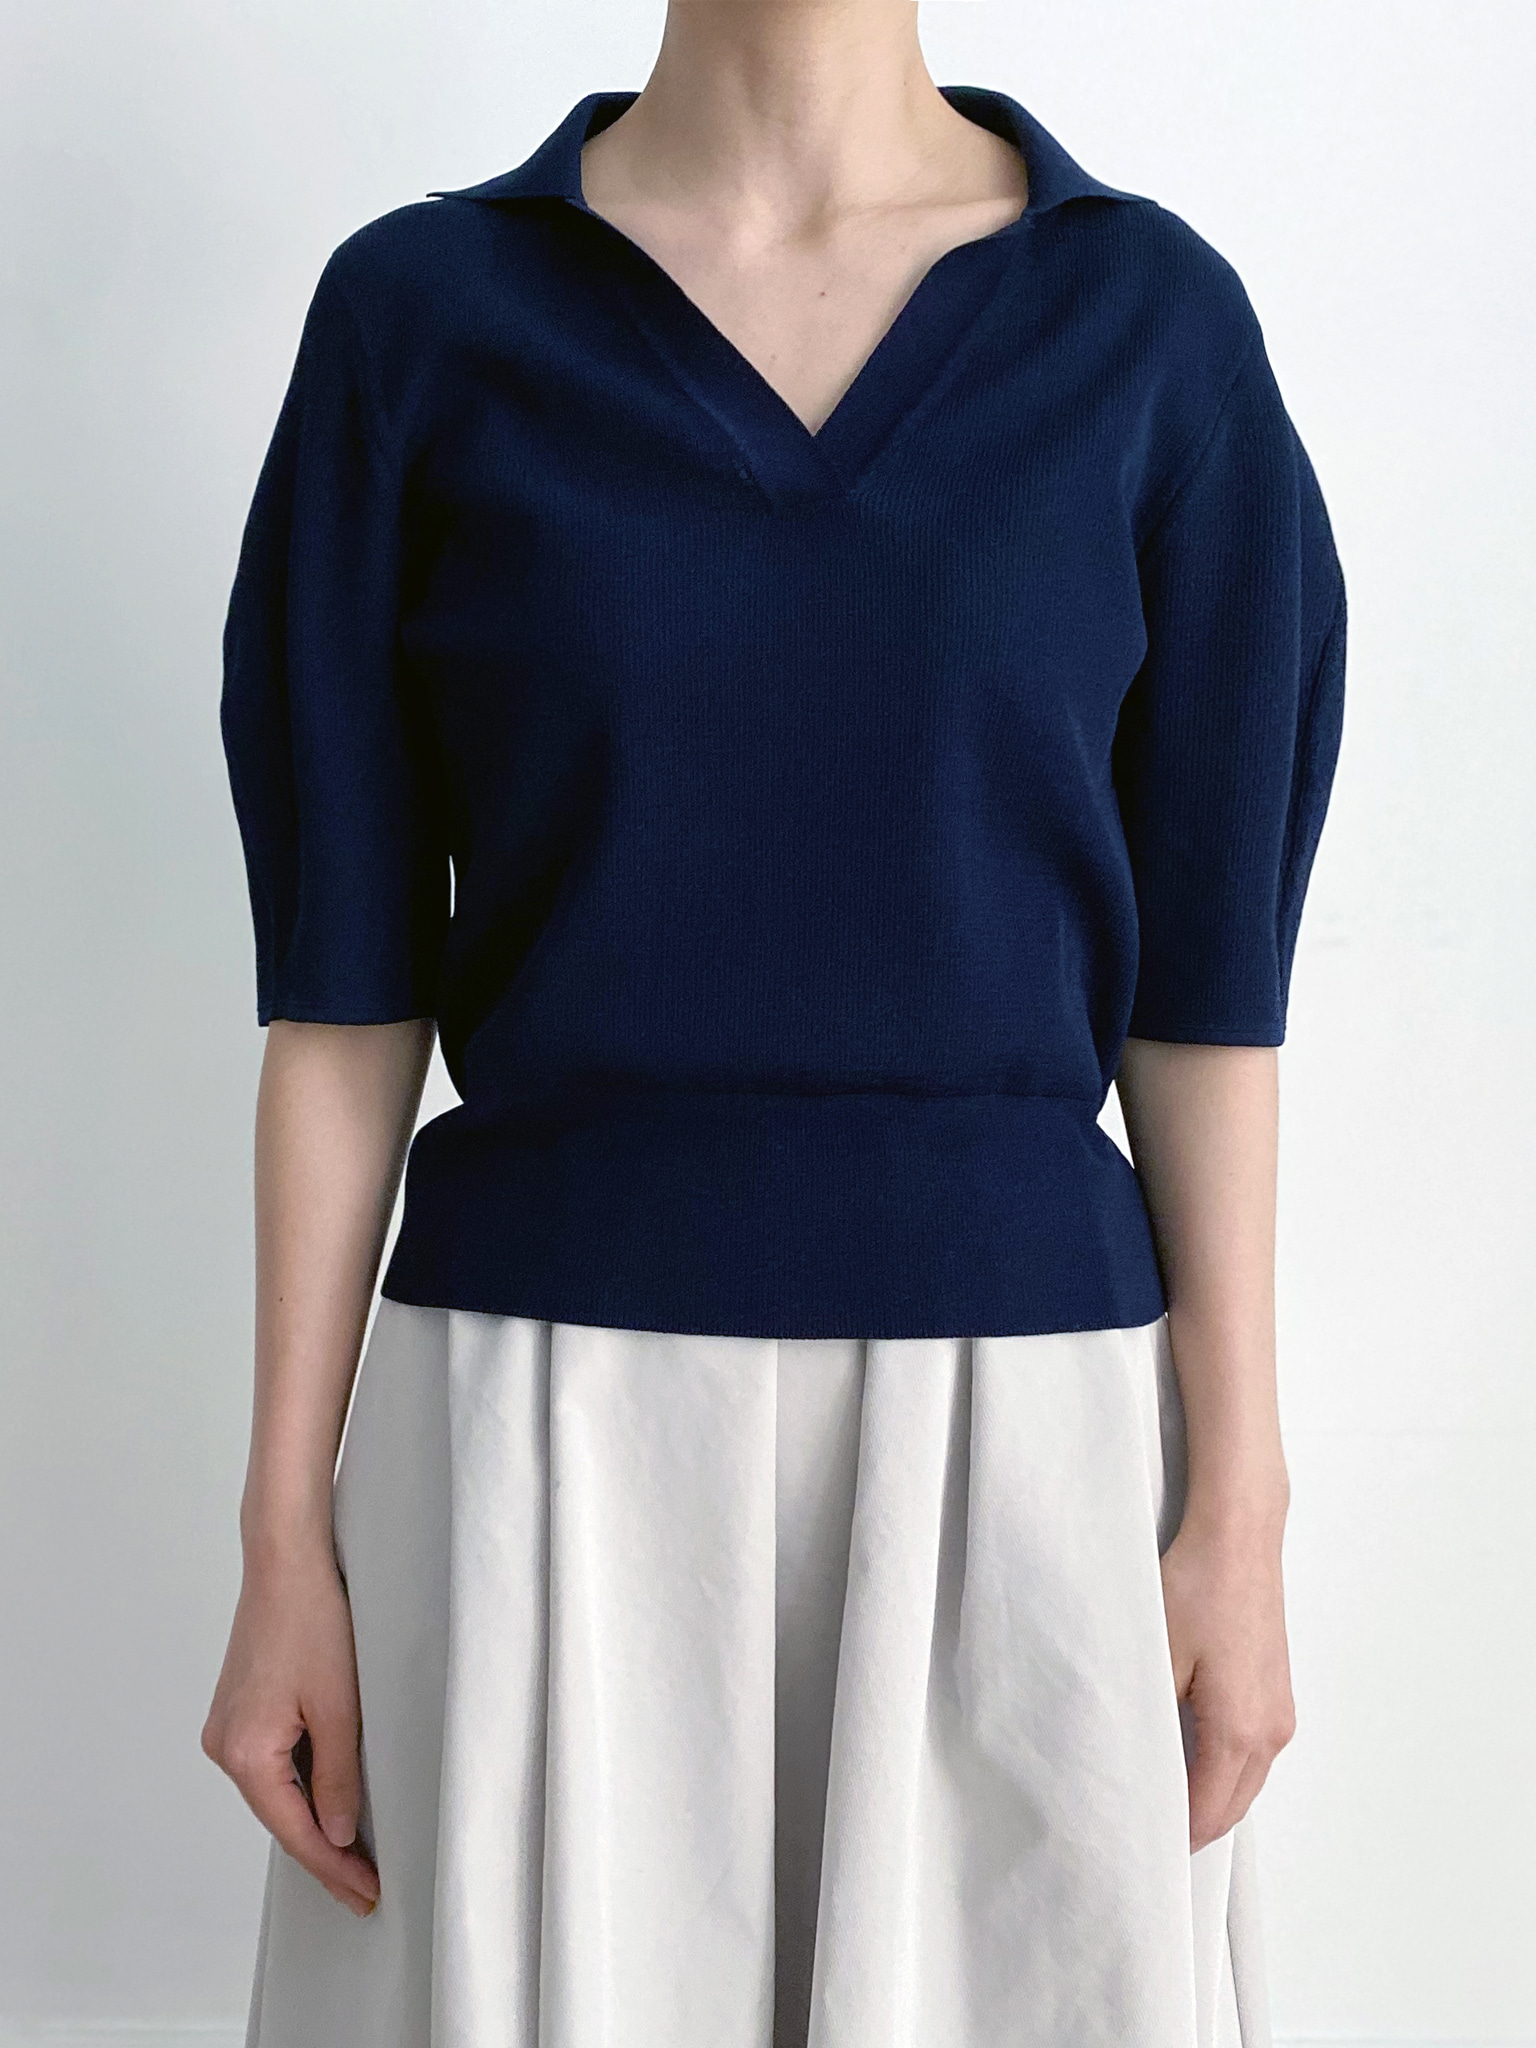 -MARE DI MARI.m- Short Balloon Sleeve Open Collar Knit